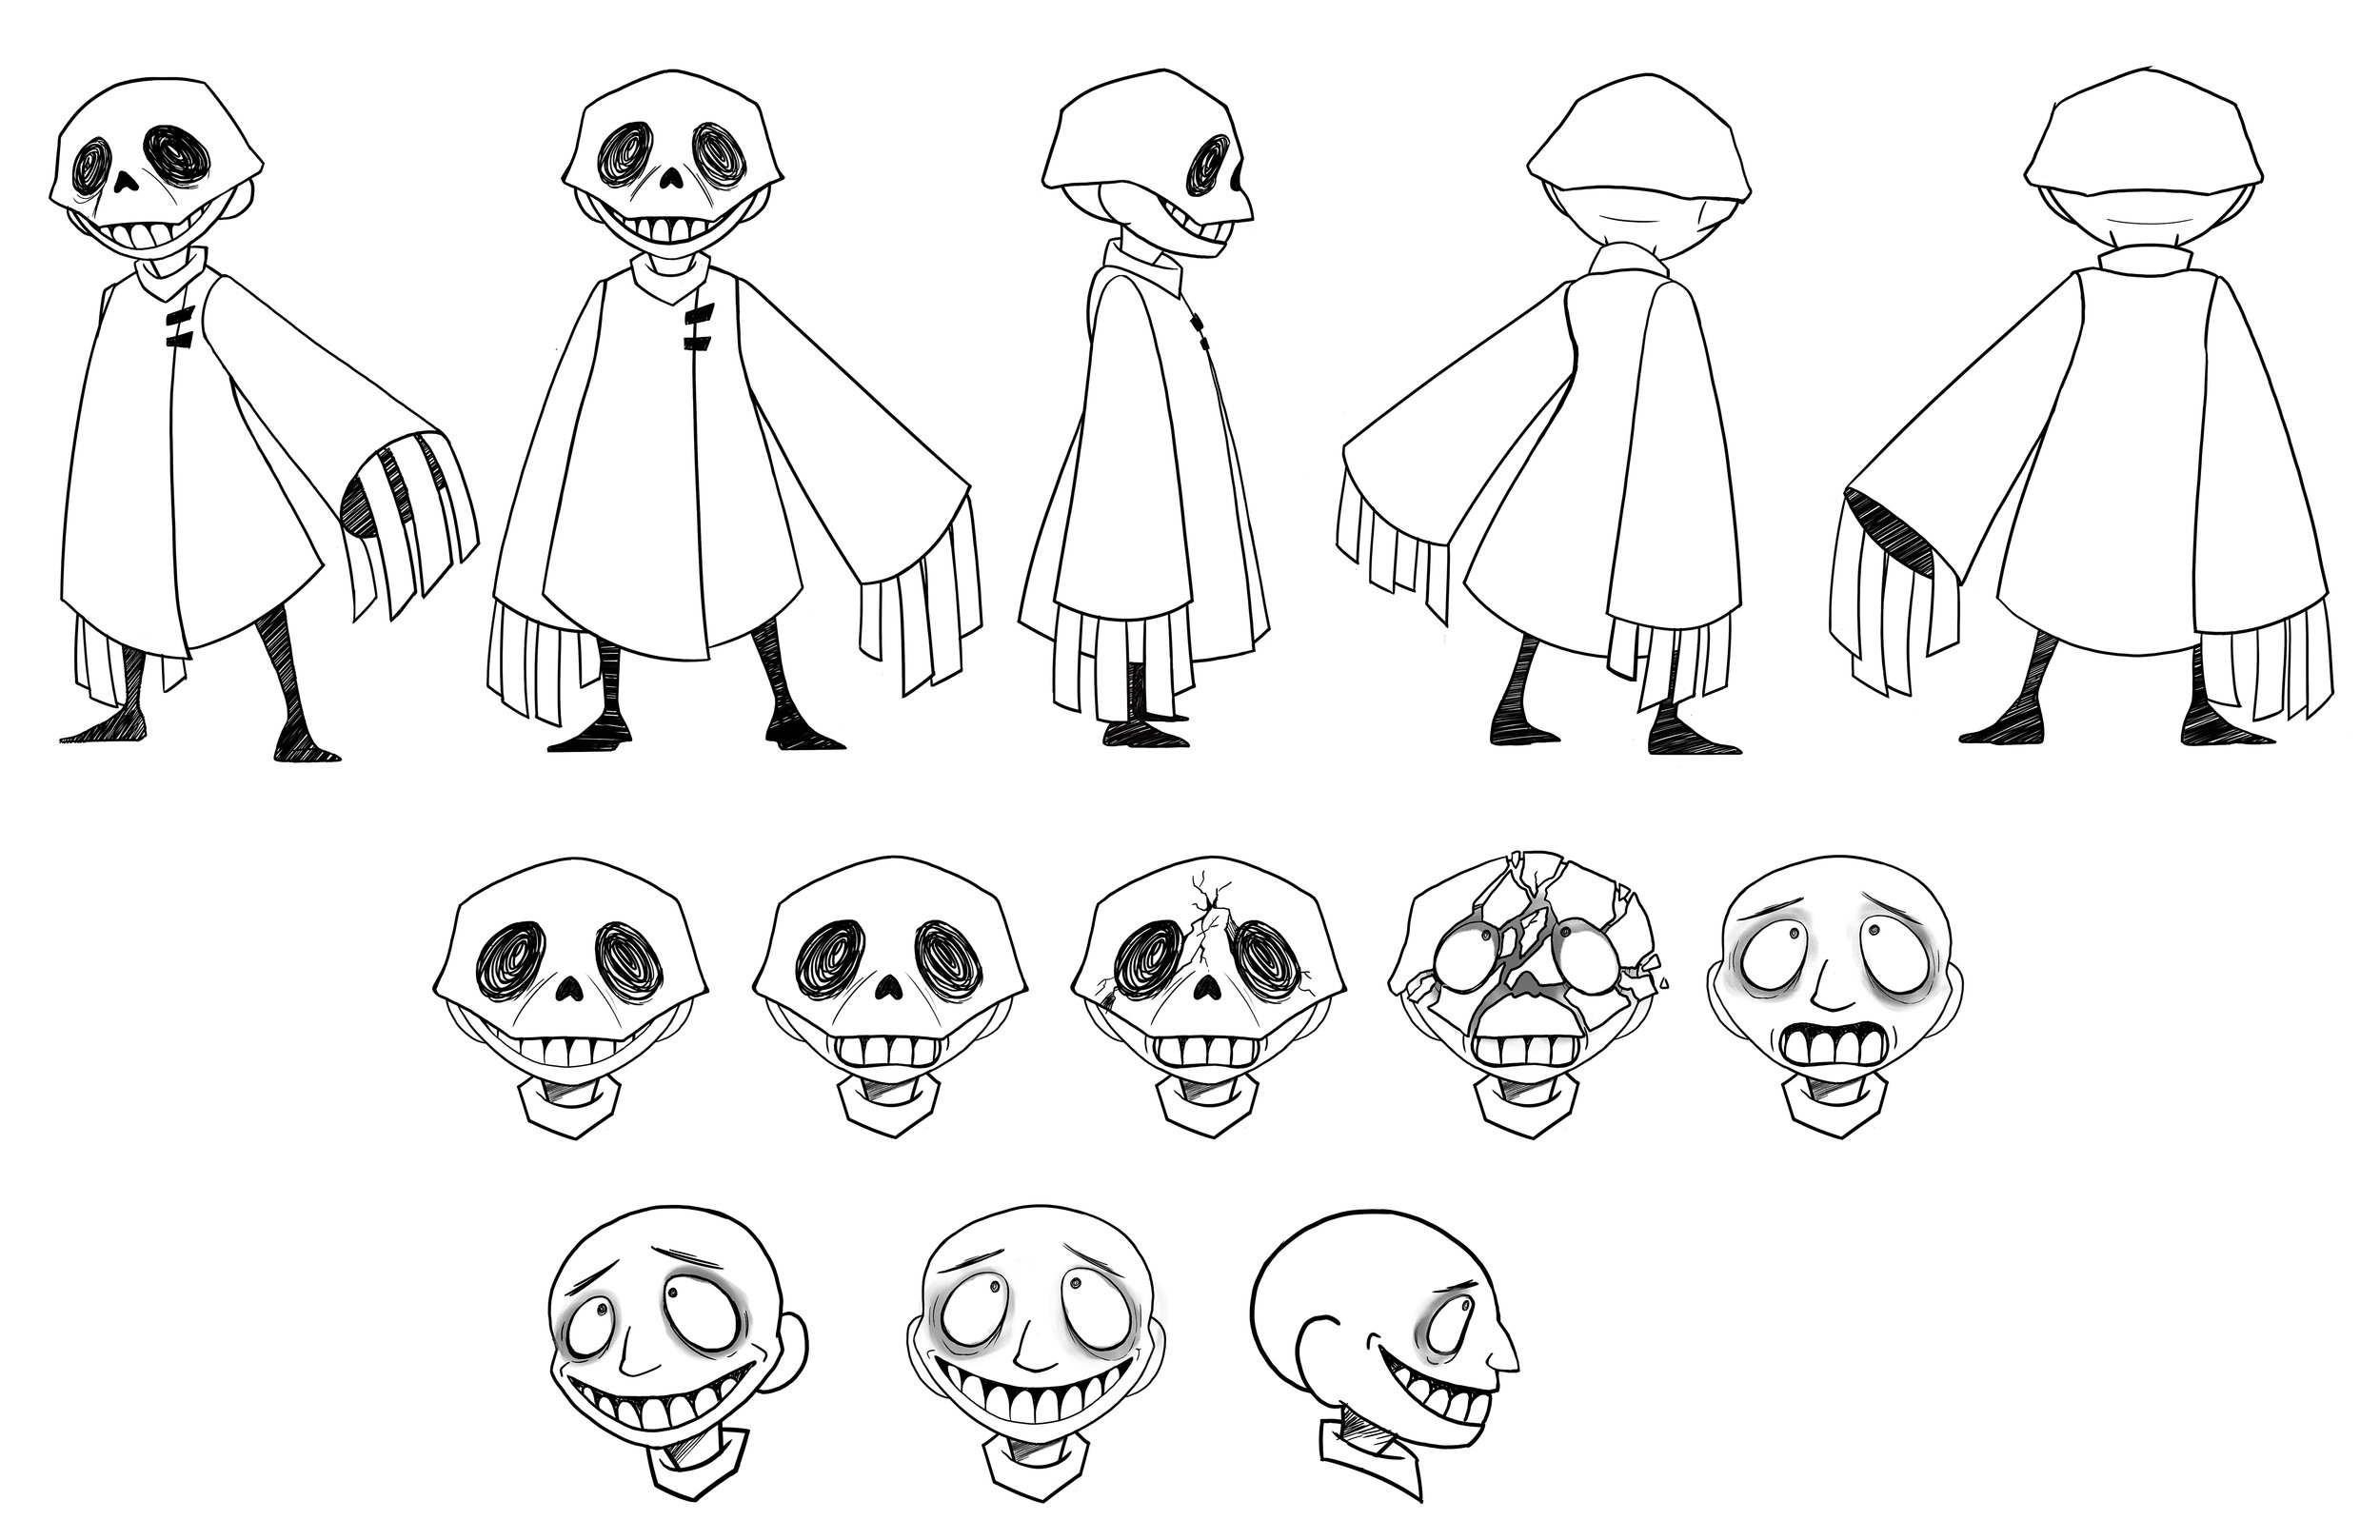 succes_character_sheets.jpg